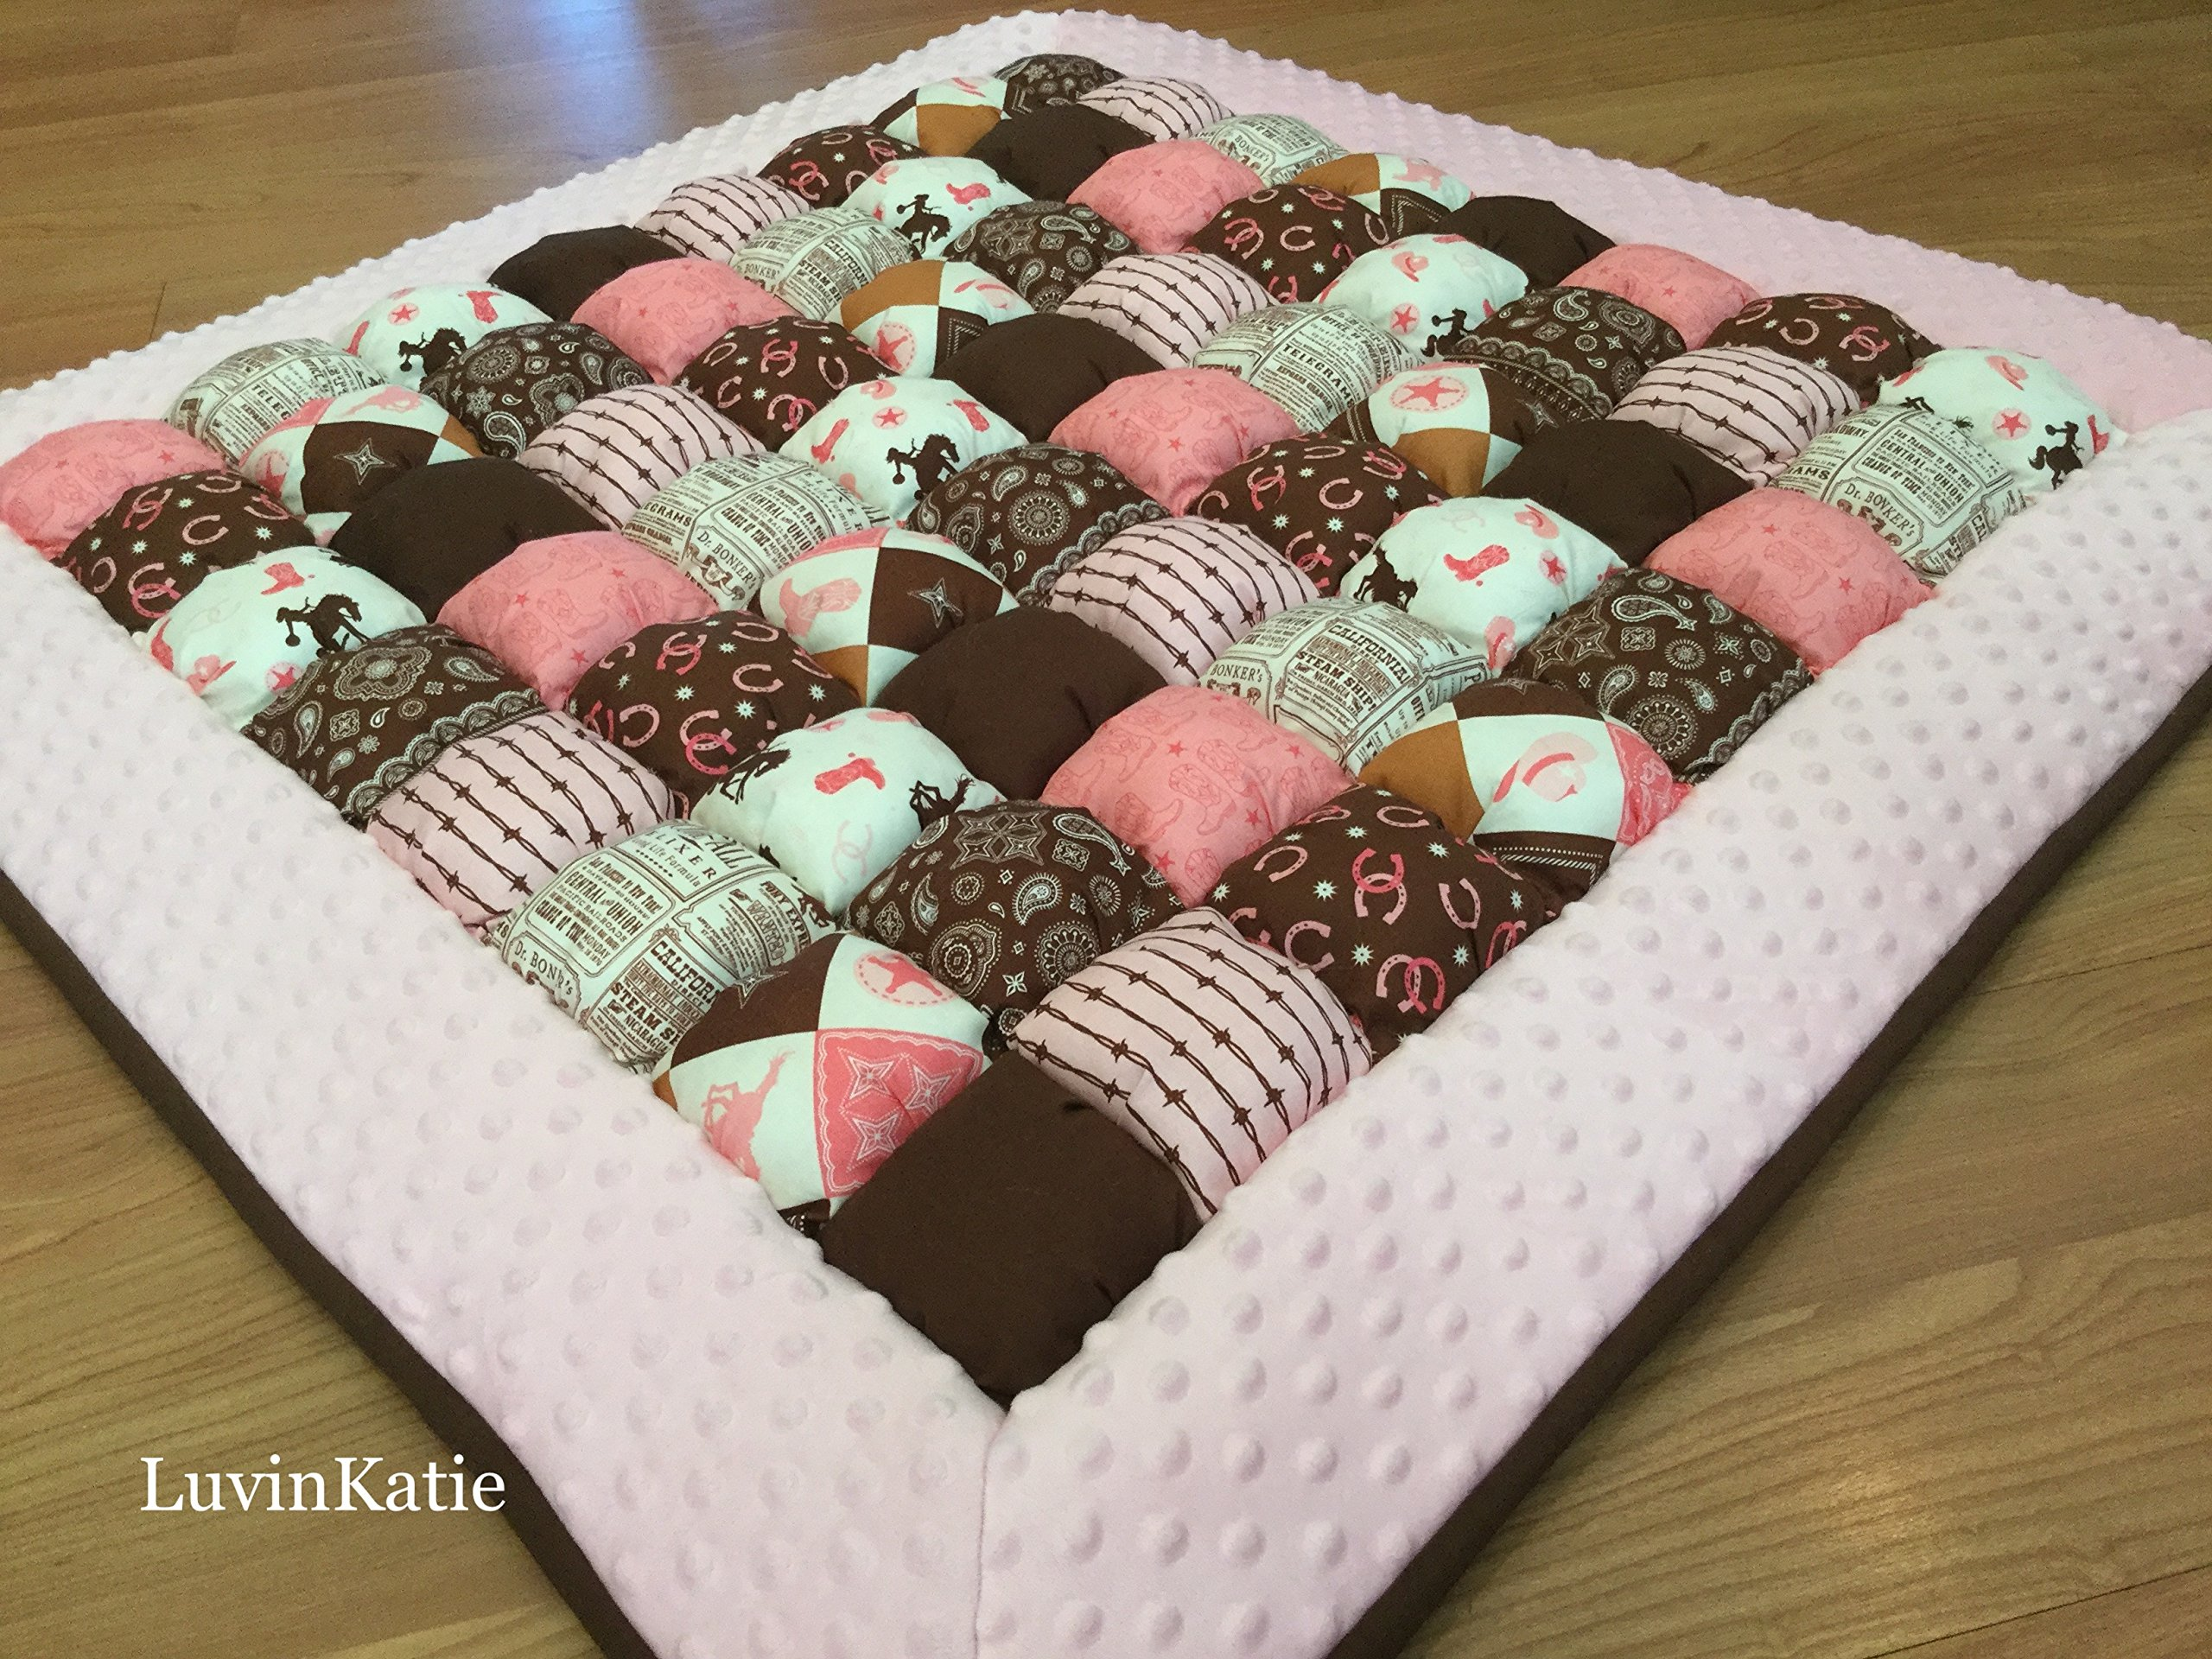 Bubble Puff Quilt Biscuit Quilt for Floor Time - Cowgirl Quilt